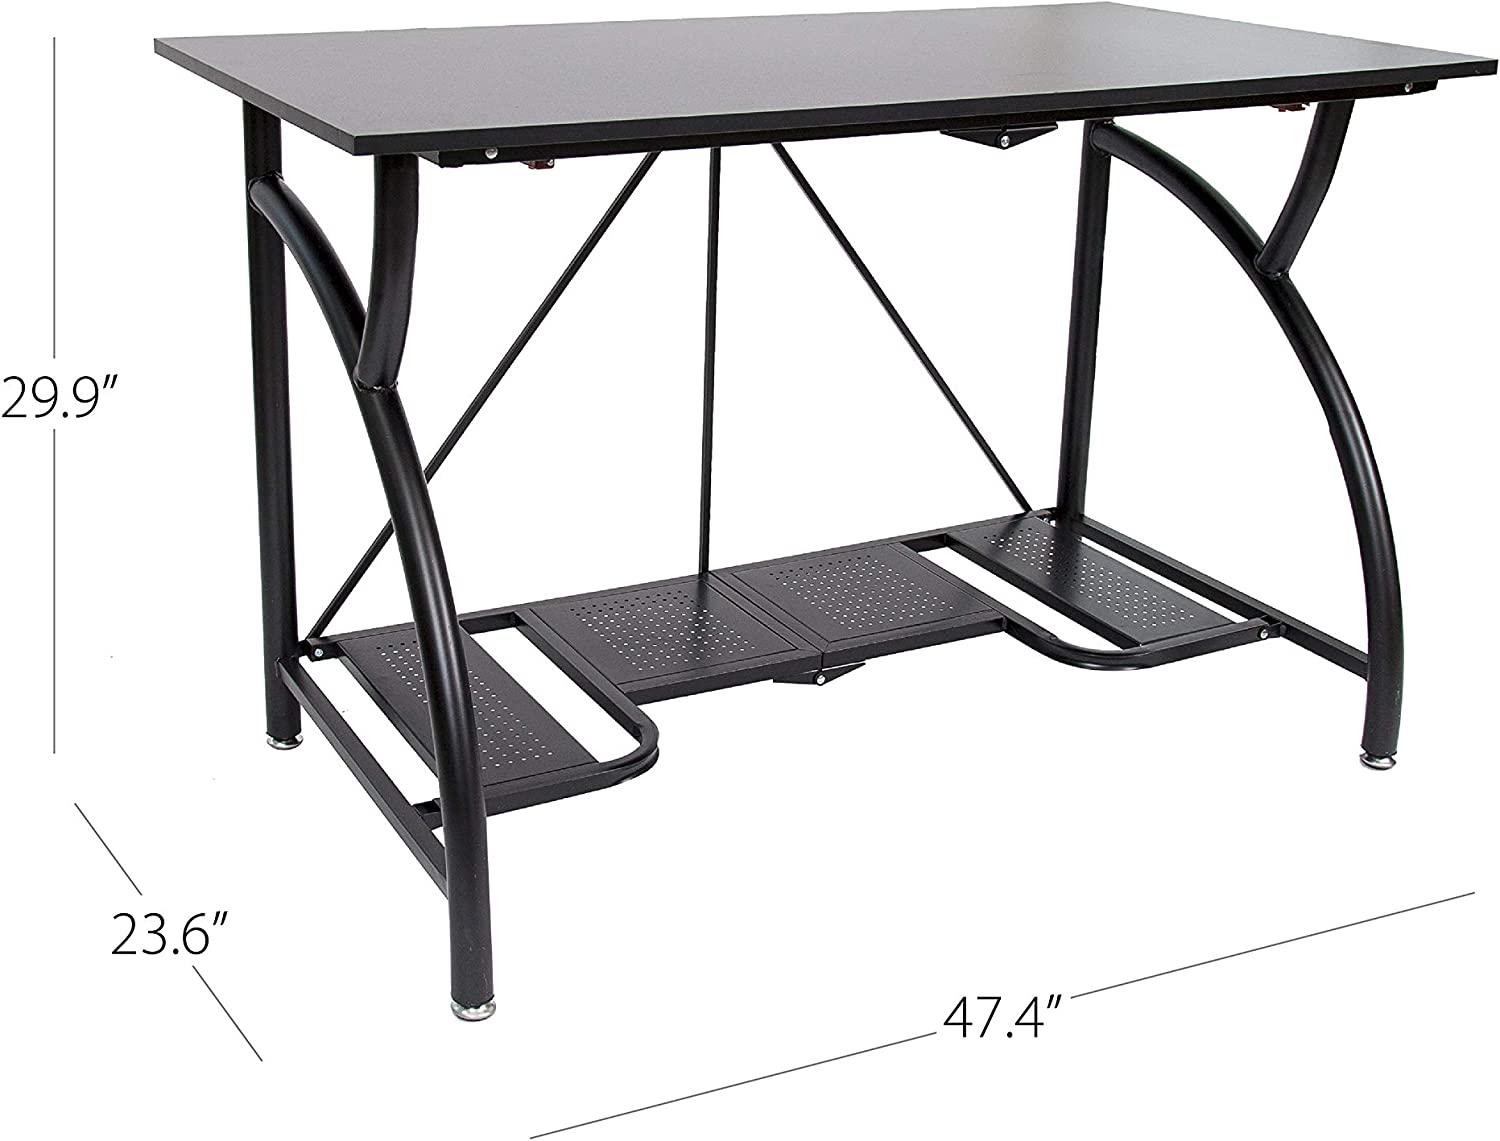 Origami Folding Computer Desk for Office Study Students Bedroom Home Gaming and Craft | Space Saving Foldable Design, Fits Dual Monitors and Laptop, Collapsible, No Assembly Required | Black, Large (RDE-01)